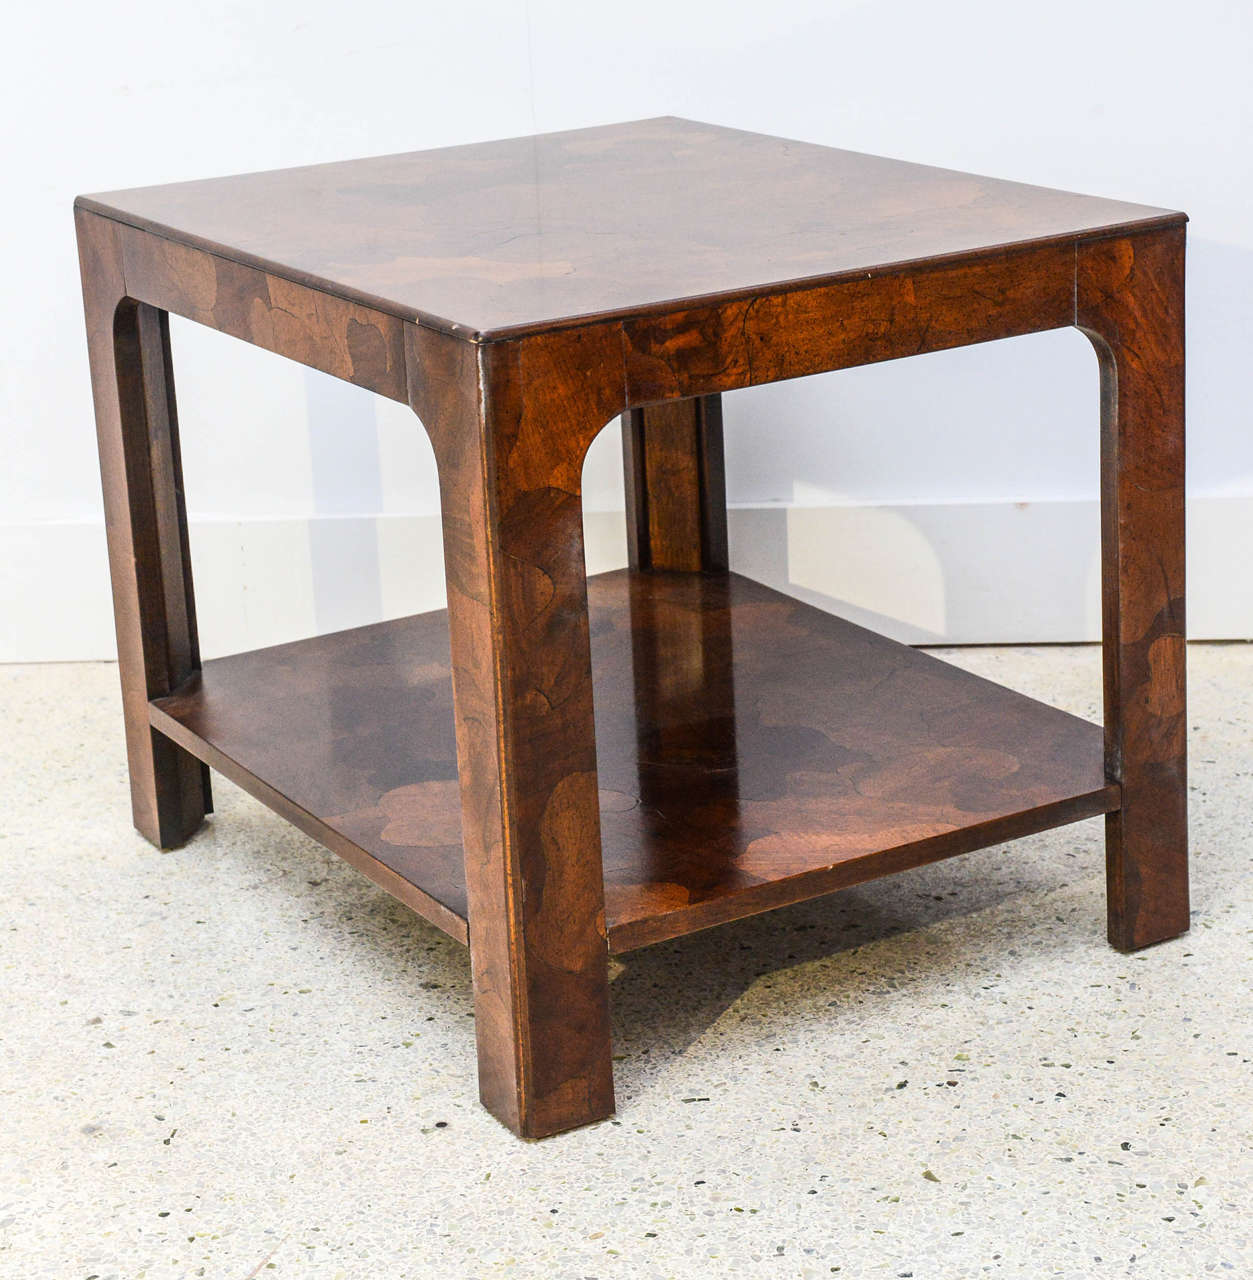 American Modern Inlaid Mixed Wood Table, American of Martinsville In Excellent Condition For Sale In Miami, FL